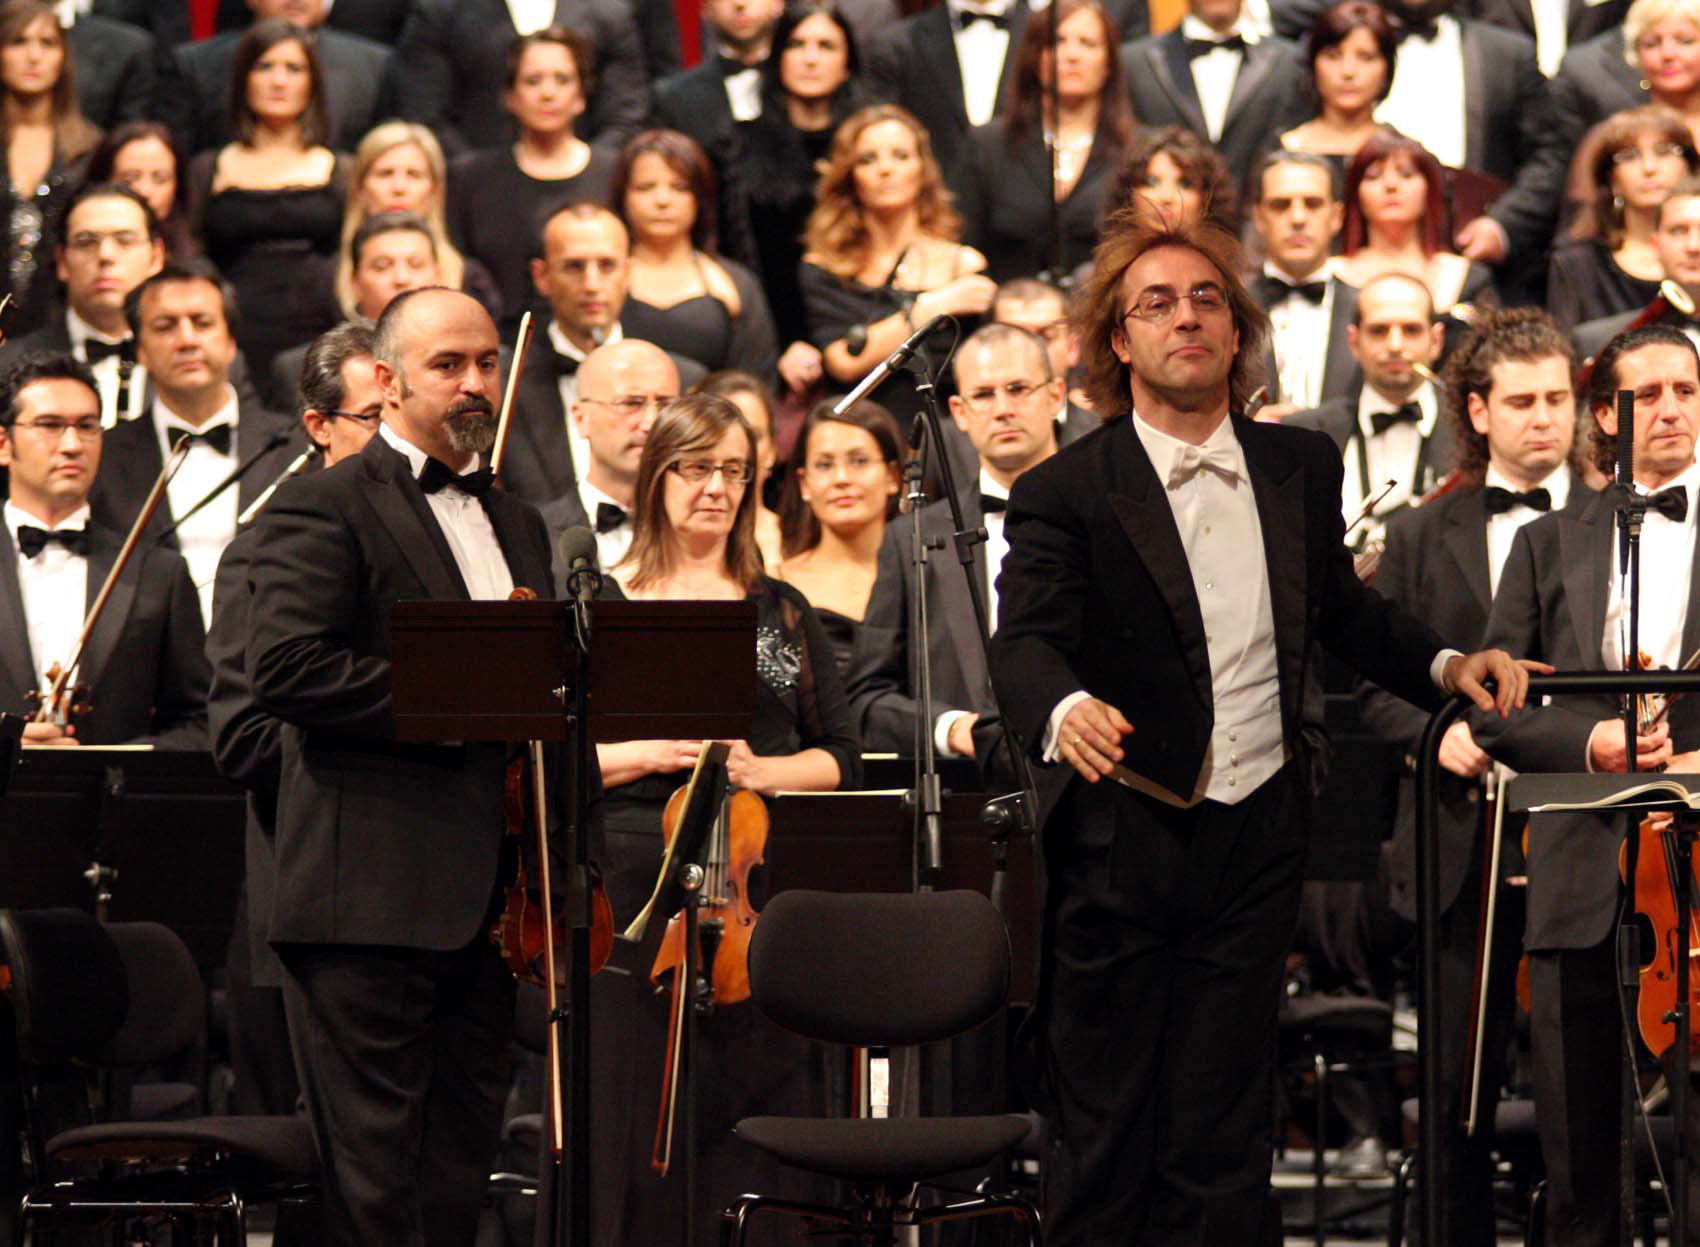 A view of the Bari province symphonic orchestra directed by Fabio Mastrangelo, at right in foreground, during a concert to mark the reopening of the Petruzzelli theatre, in Bari southern Italy. (File)